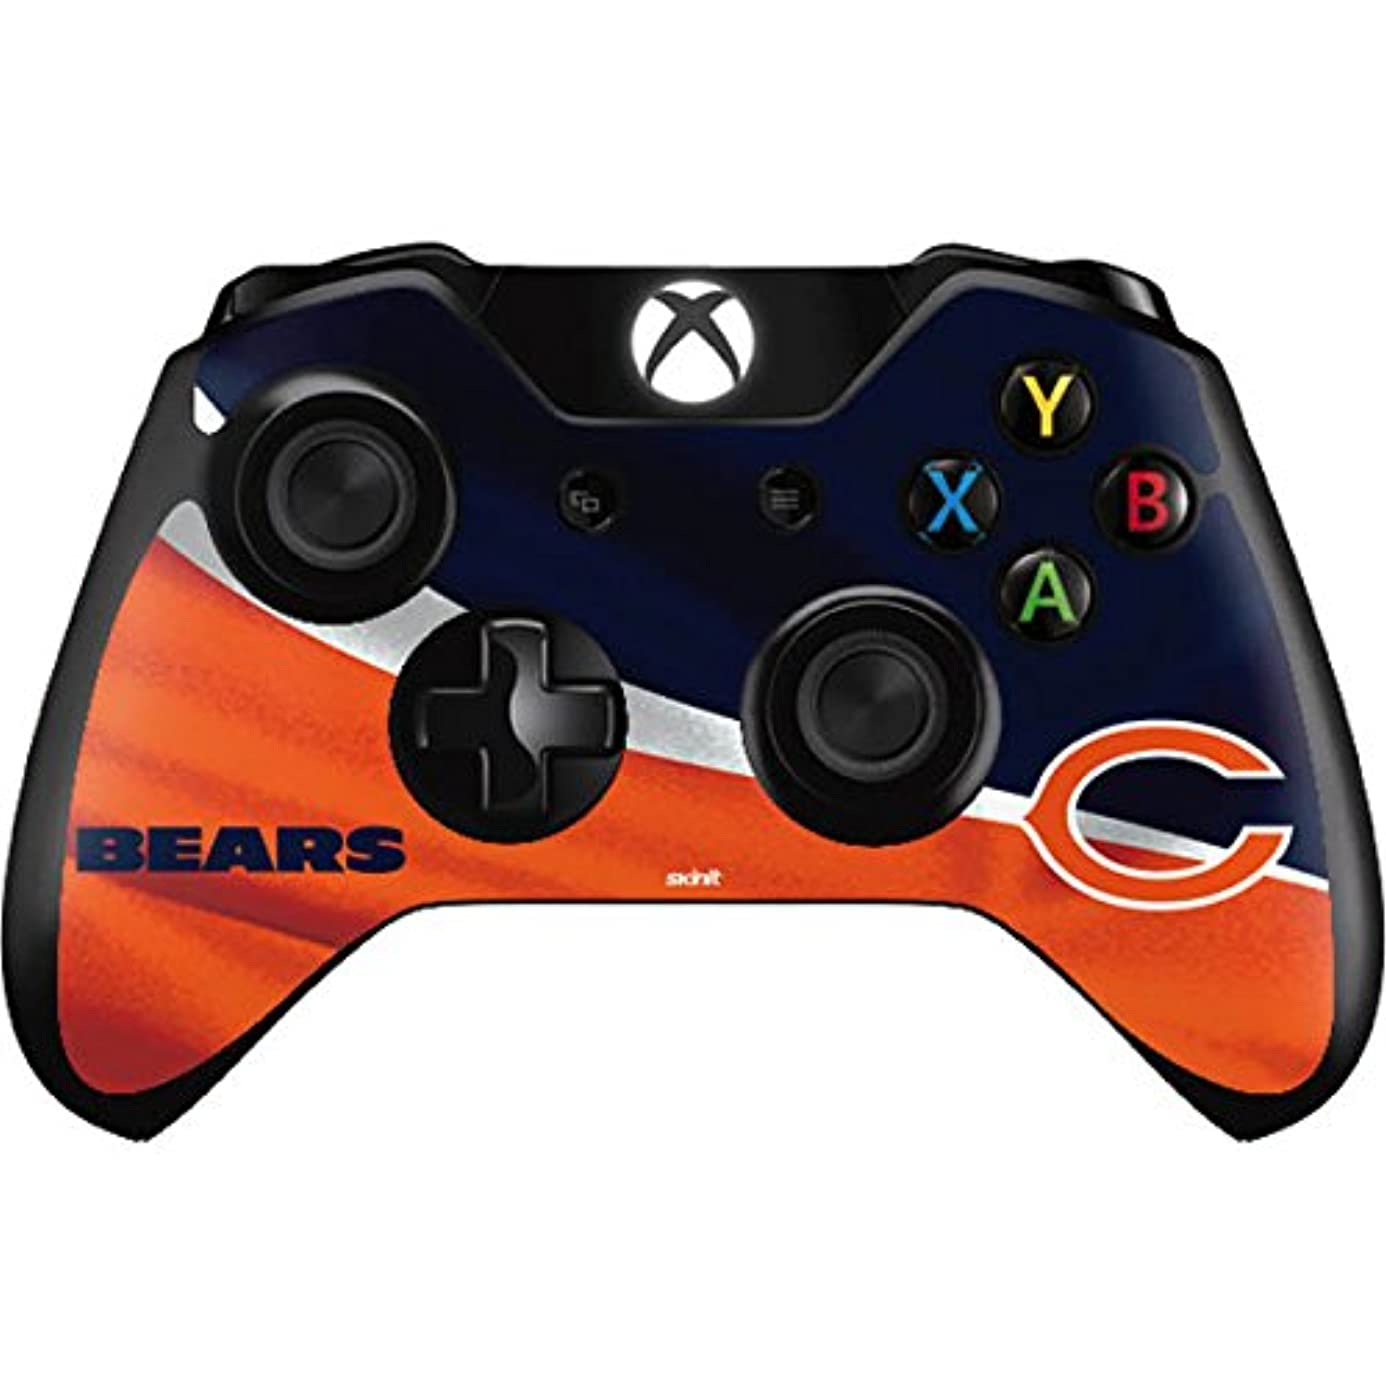 Skinit Chicago Bears Xbox One Controller Skin - Officially Licensed NFL Gaming Decal - Ultra Thin, Lightweight Vinyl Decal Protection